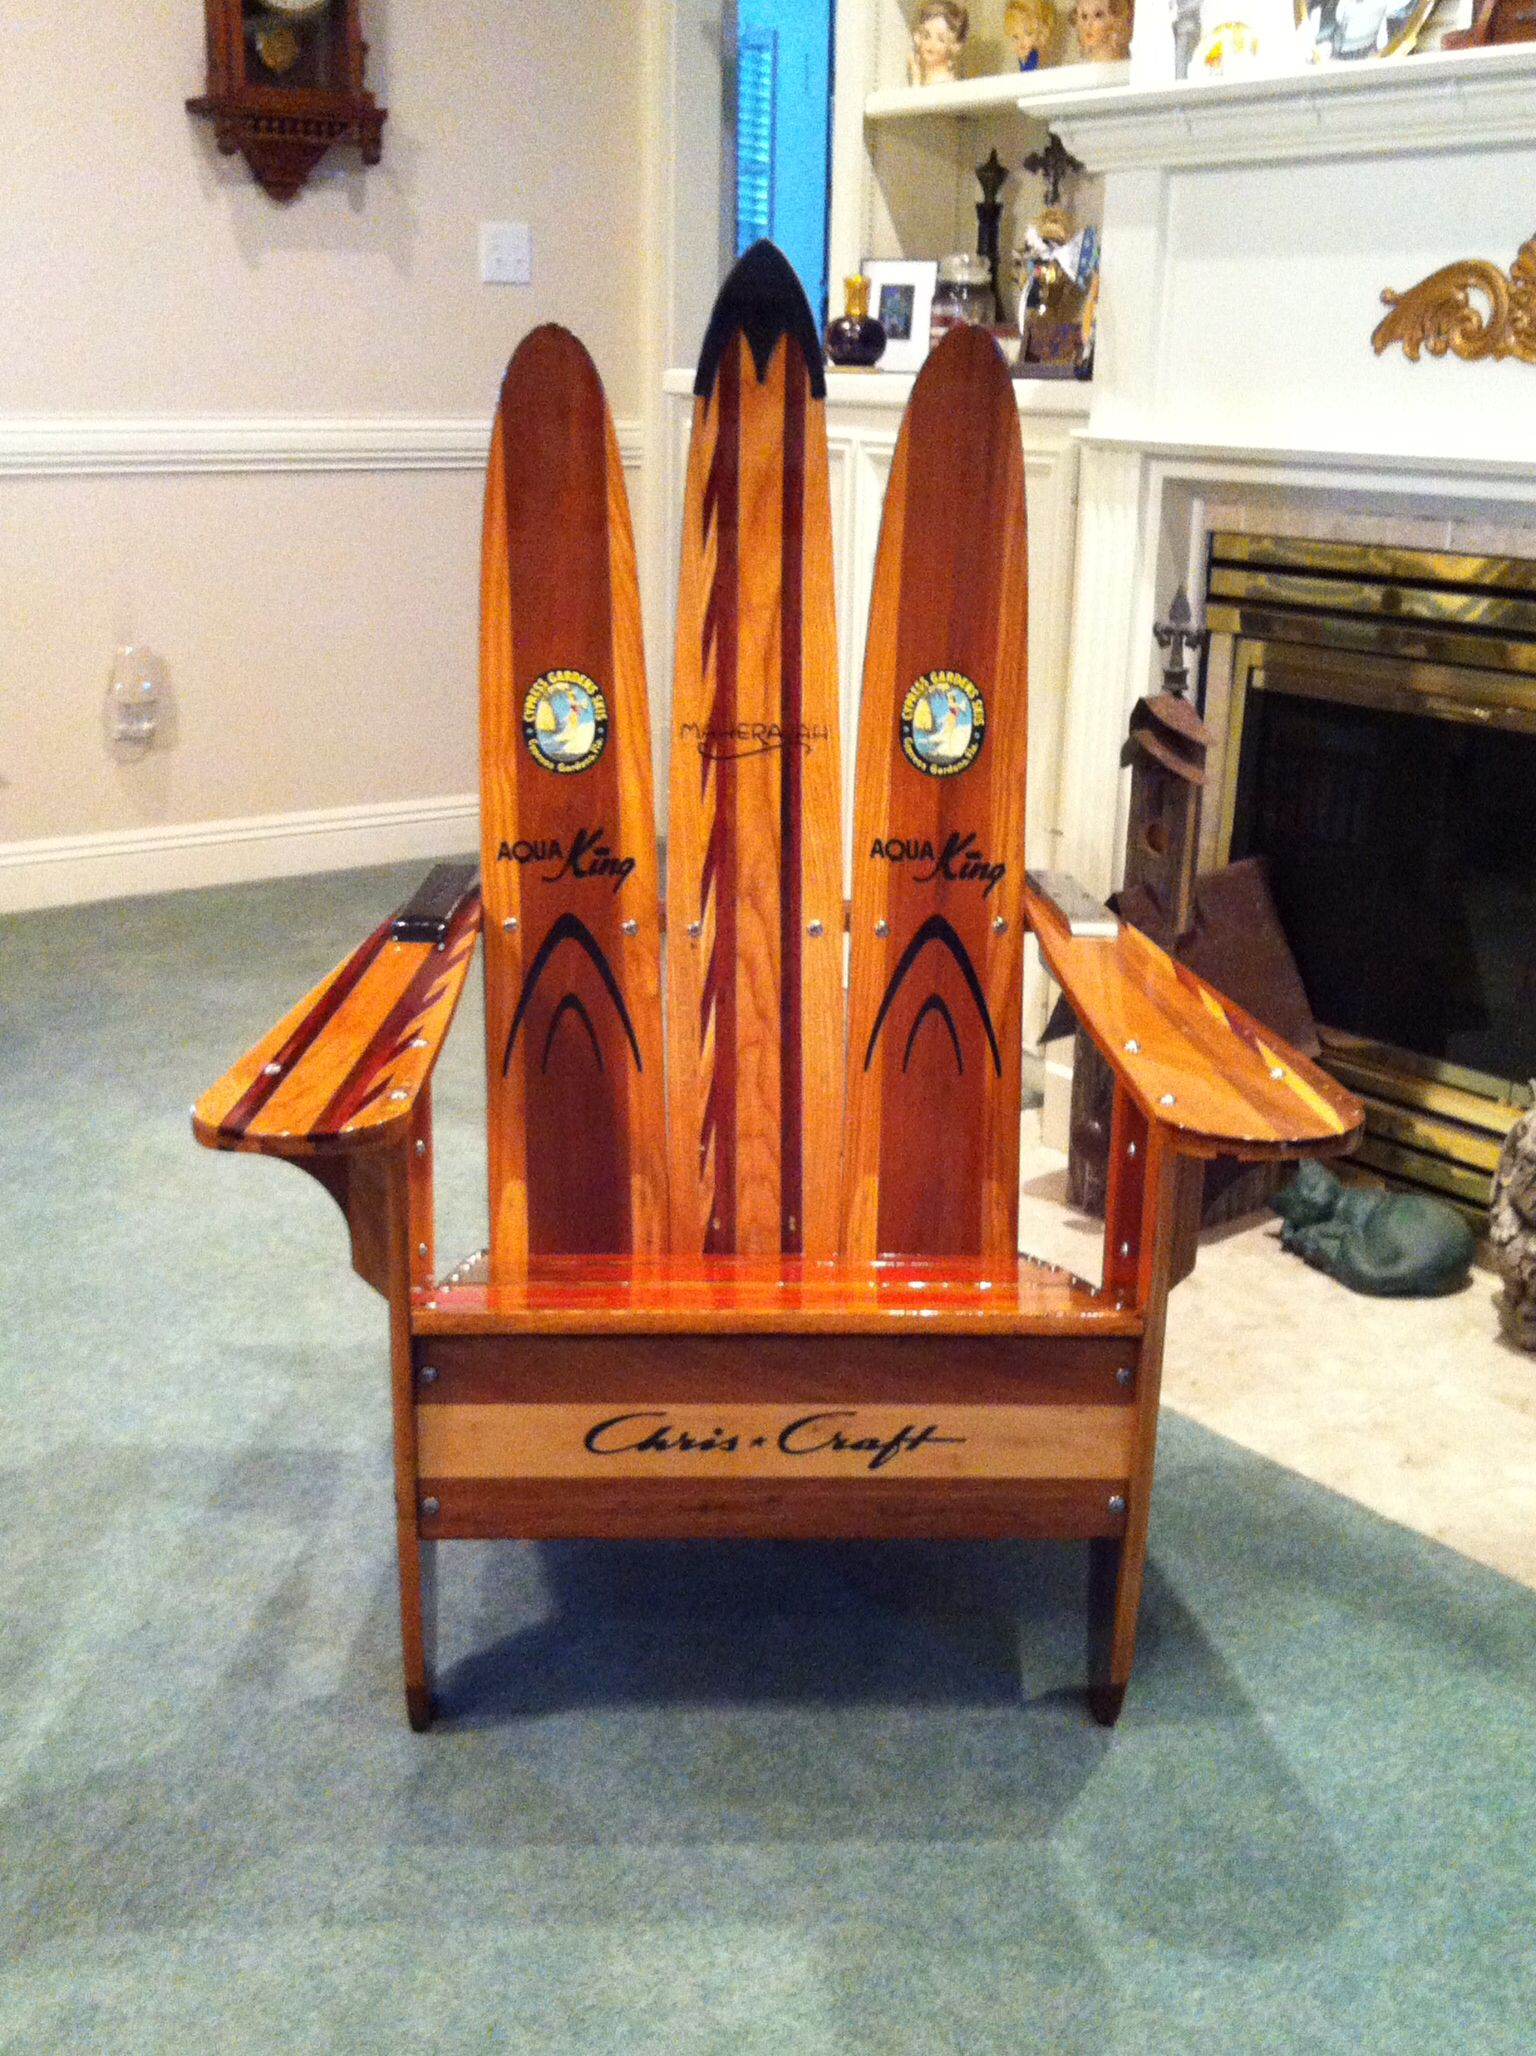 Water Ski Chair Driftwood Furniture Practical Projects For Your Home And